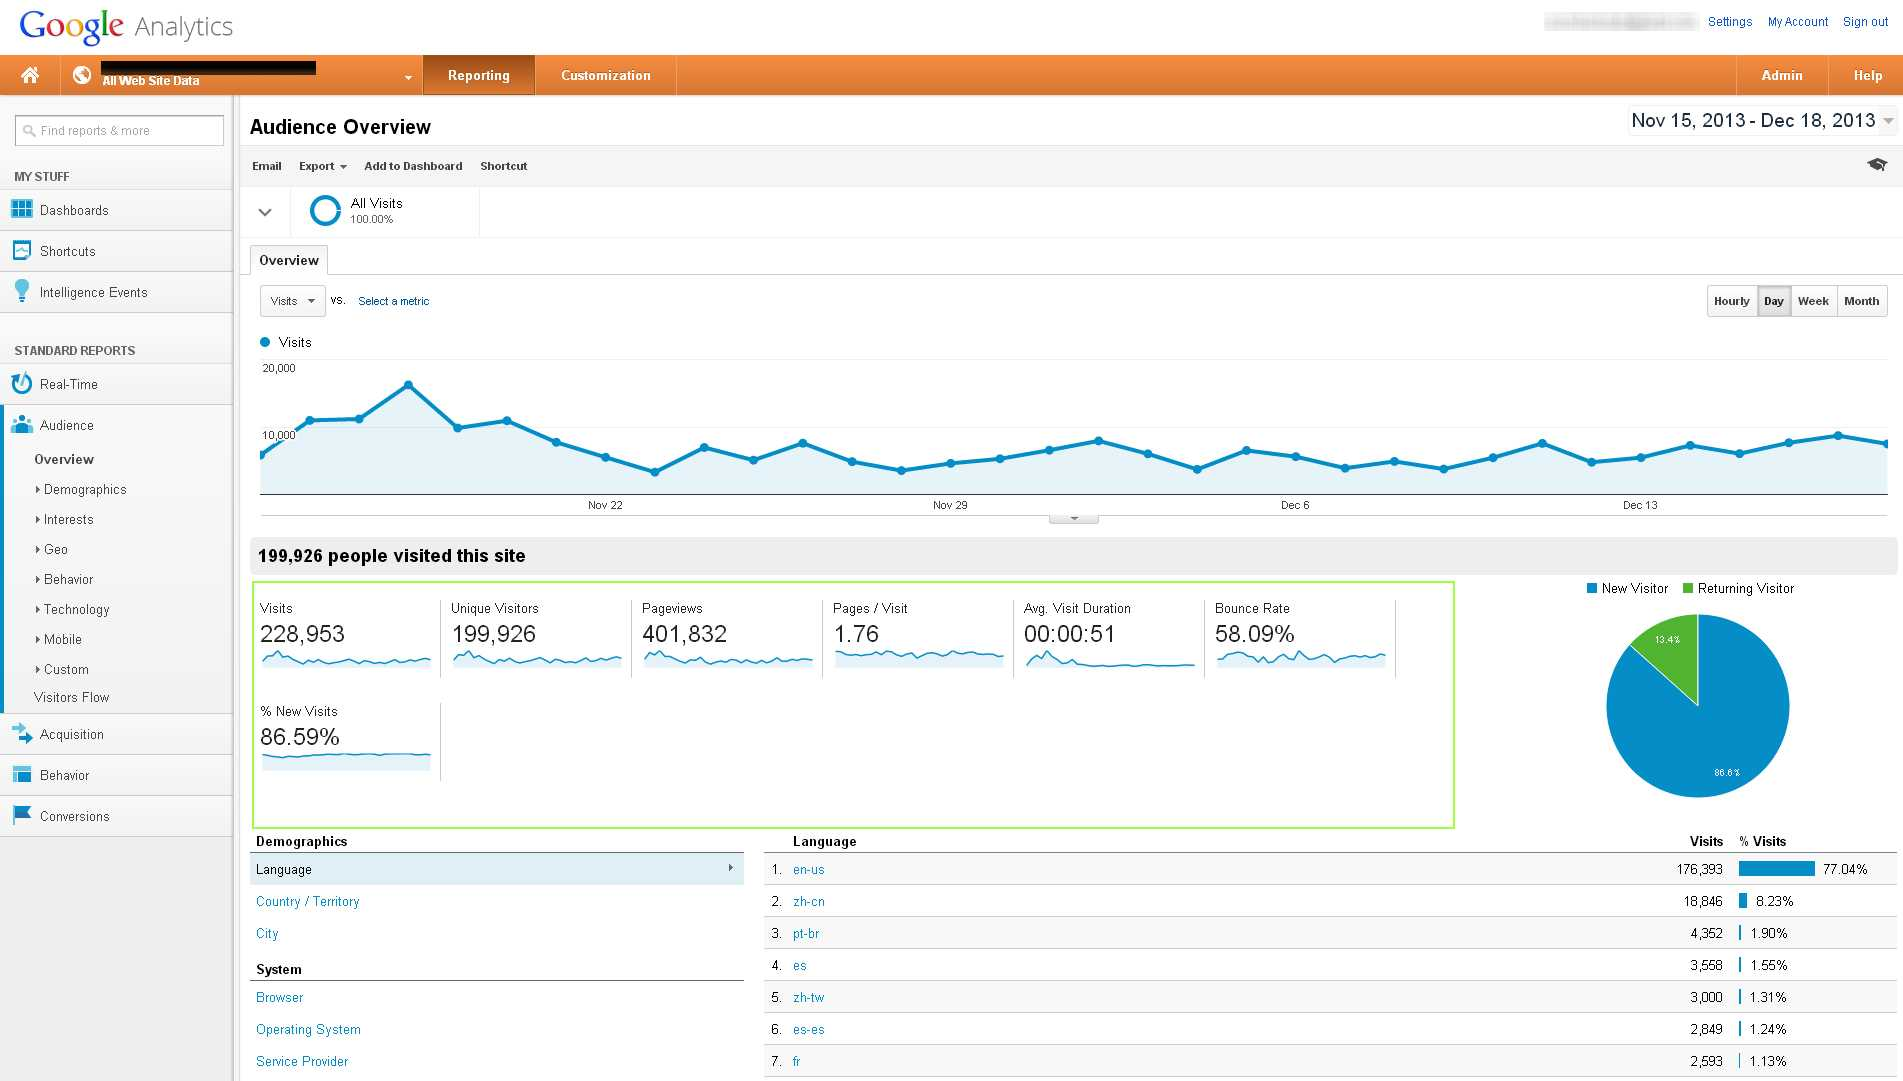 Feature Your SEOClerks Services on my Website 30 days